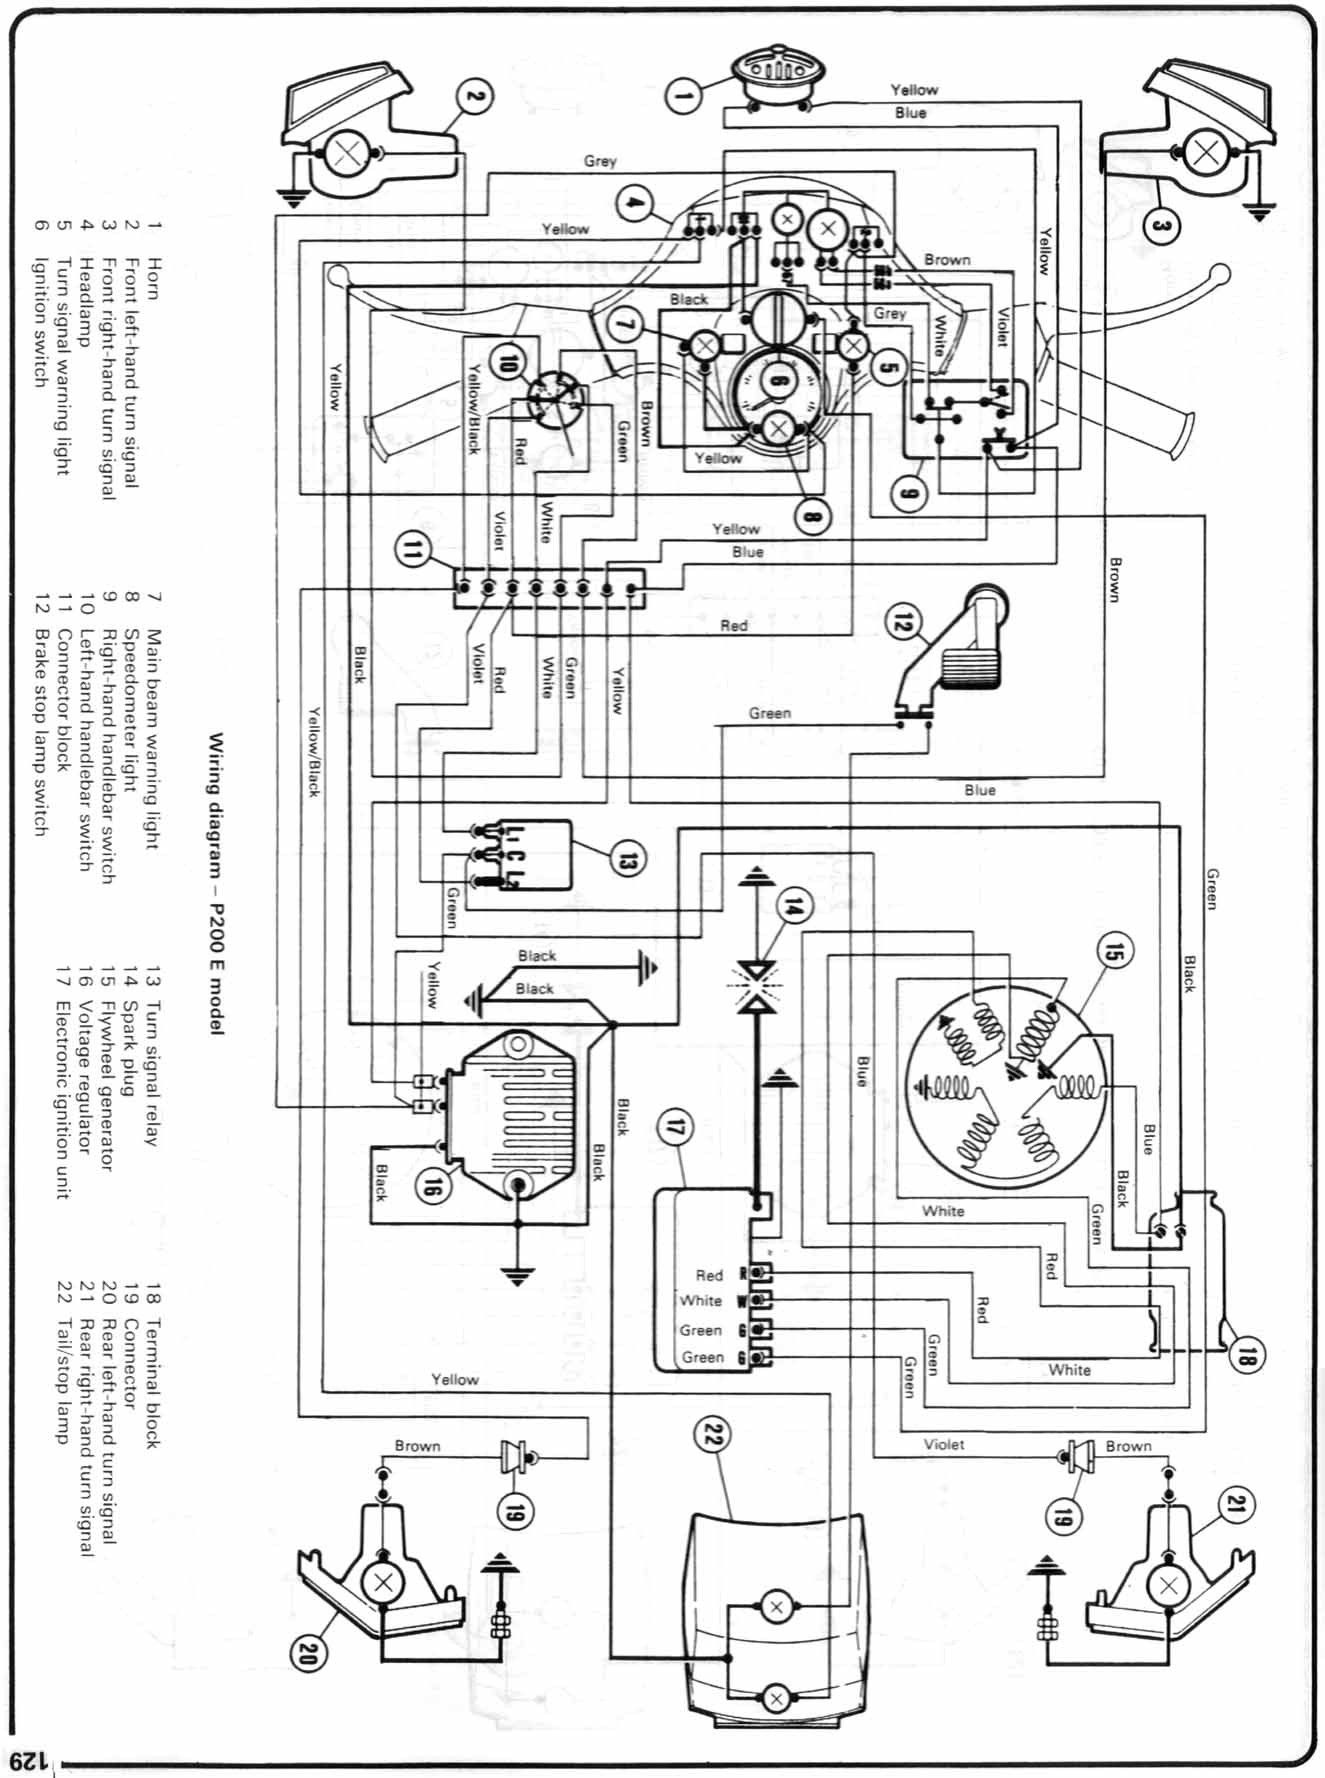 A Directional Wiring Diagram For 2003 Dodge Durango